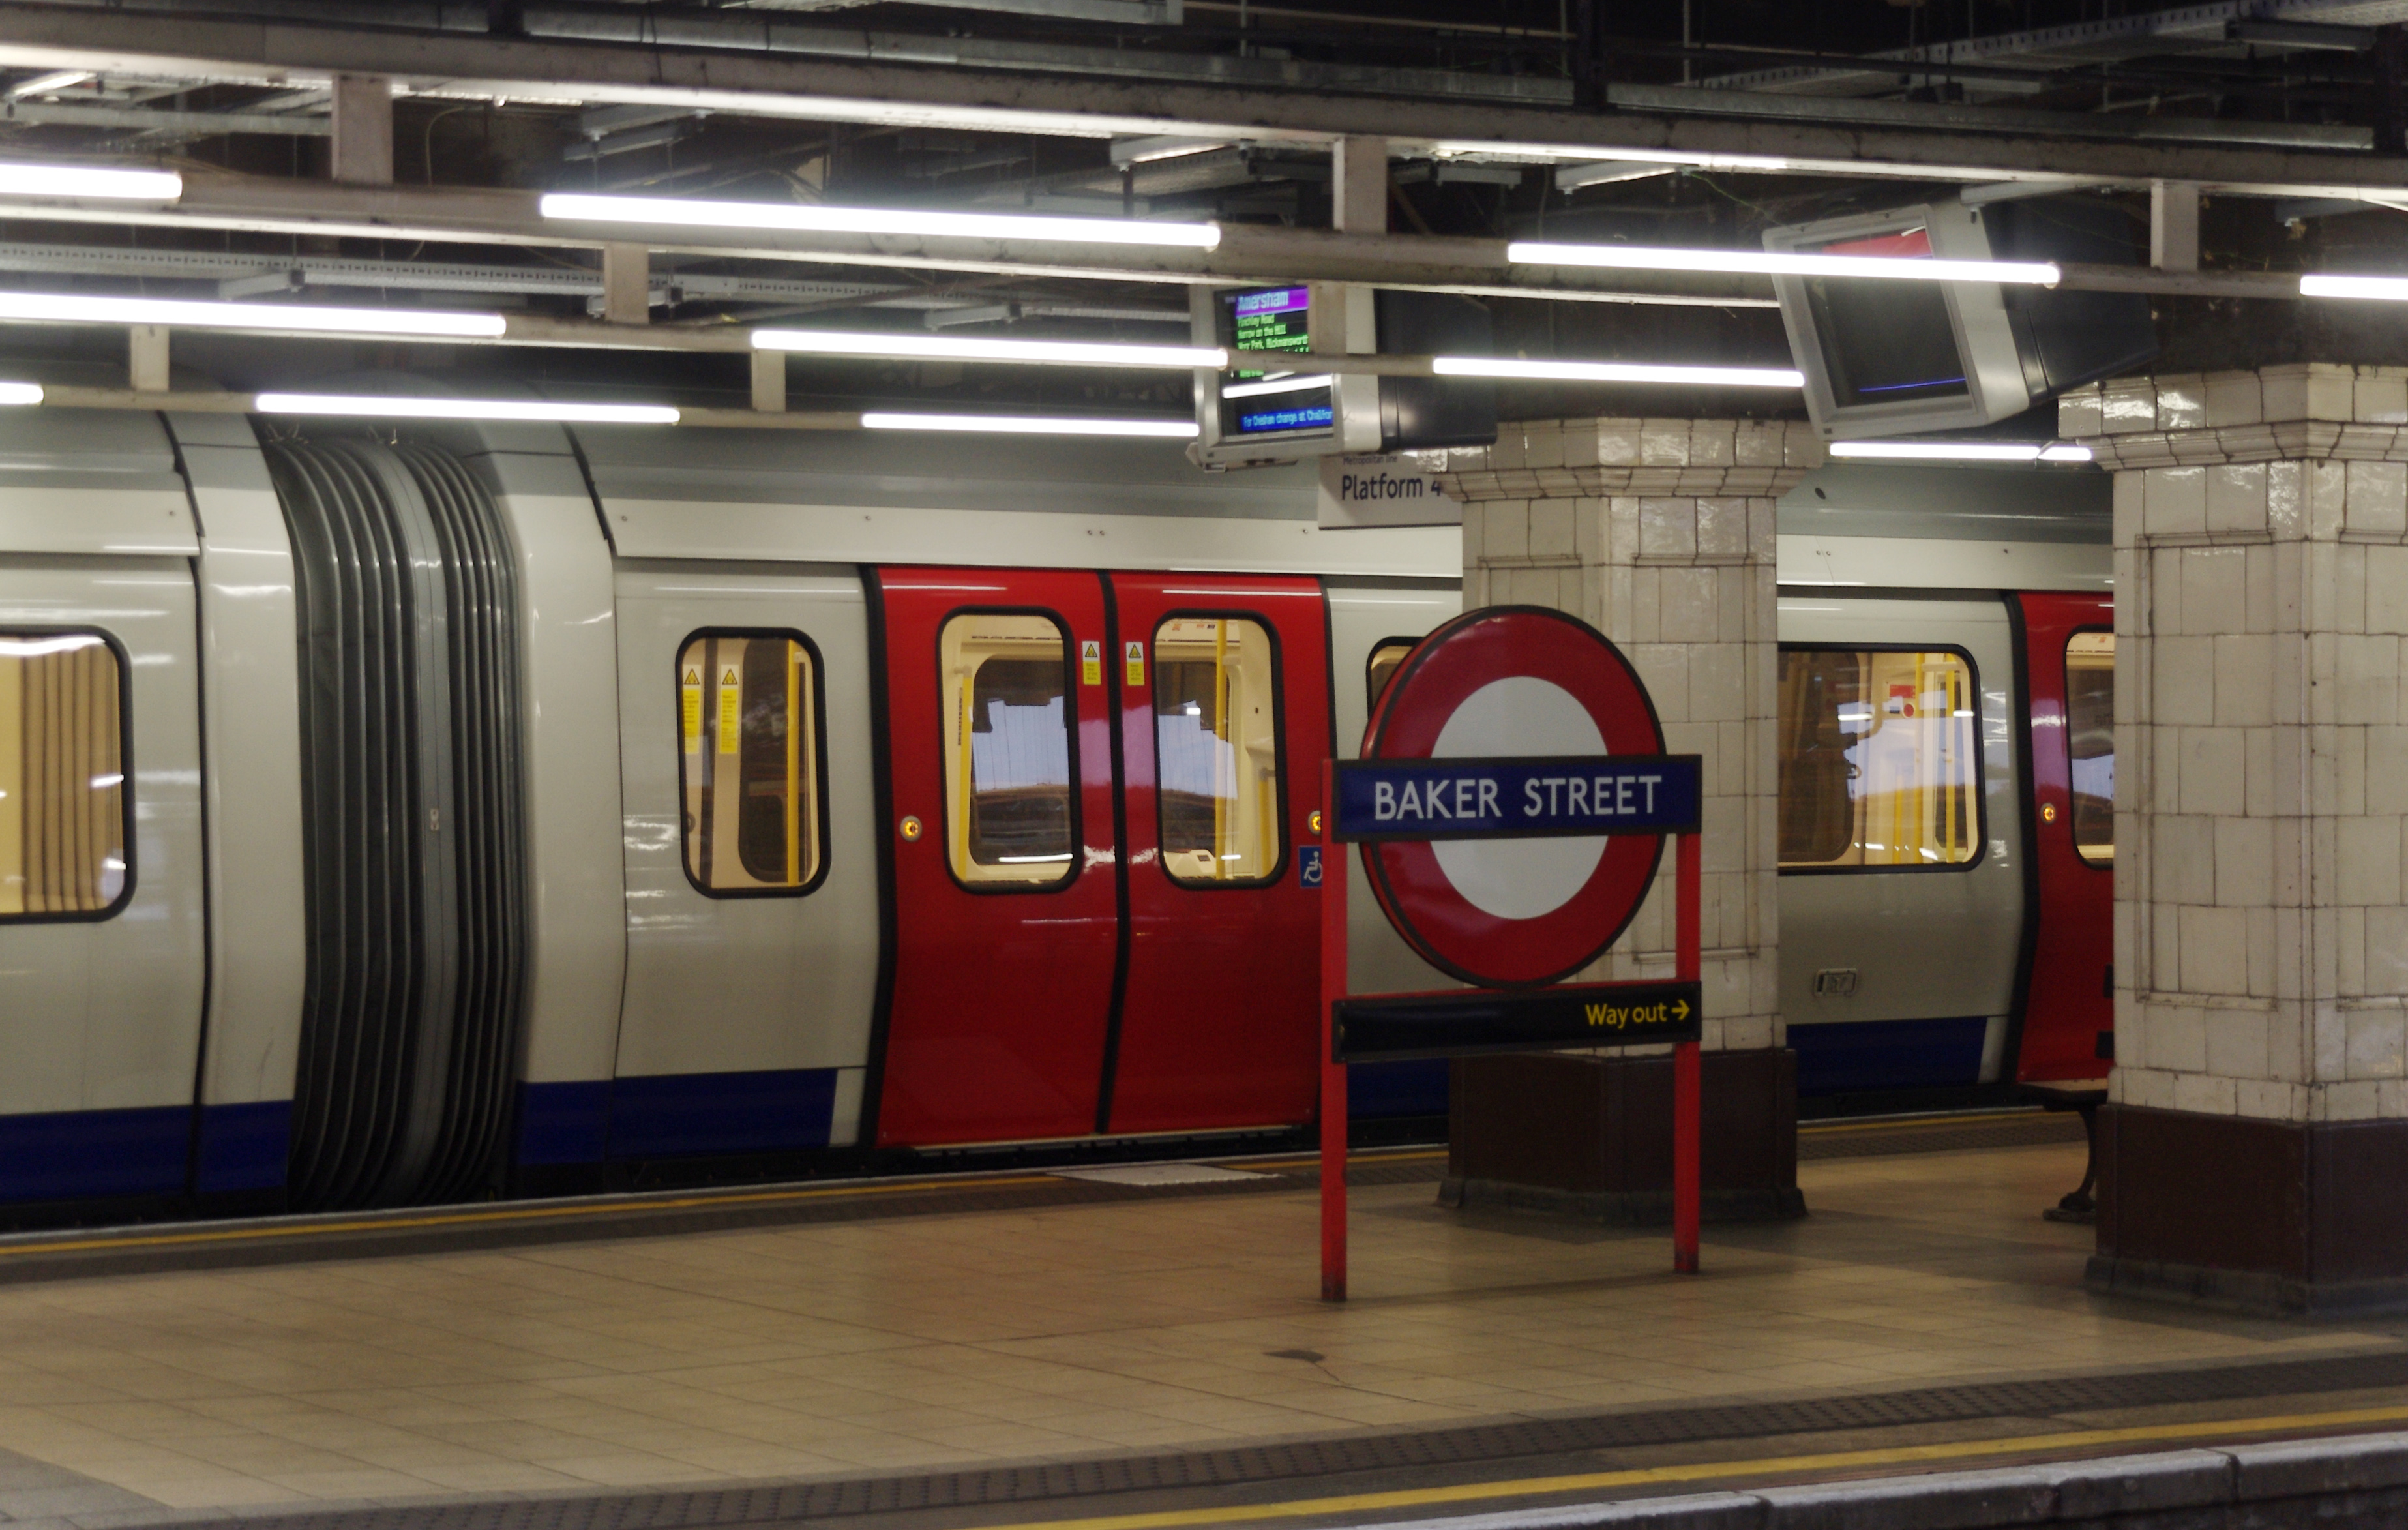 File:Baker Street tube station MMB 06.jpg - Wikimedia Commons